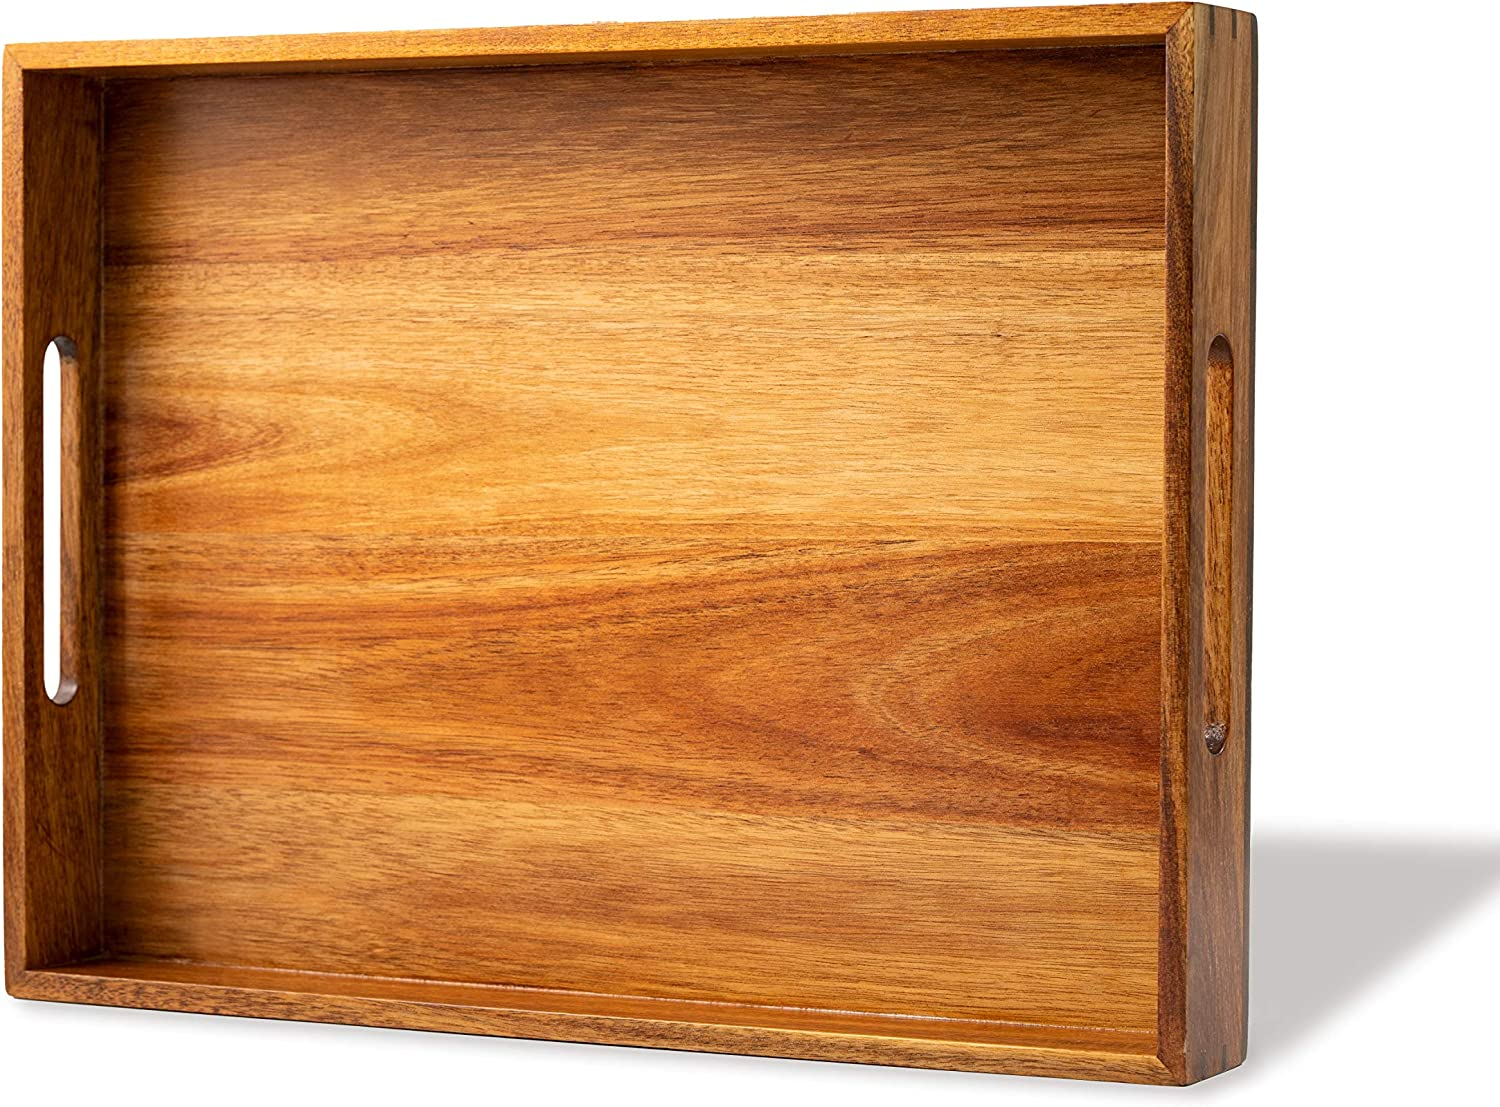 DecoVibe Acacia Wood Serving Tray with Handles - Rustic Wooden Tray for Living Room - Decorative Ottoman Wood Tray - 16